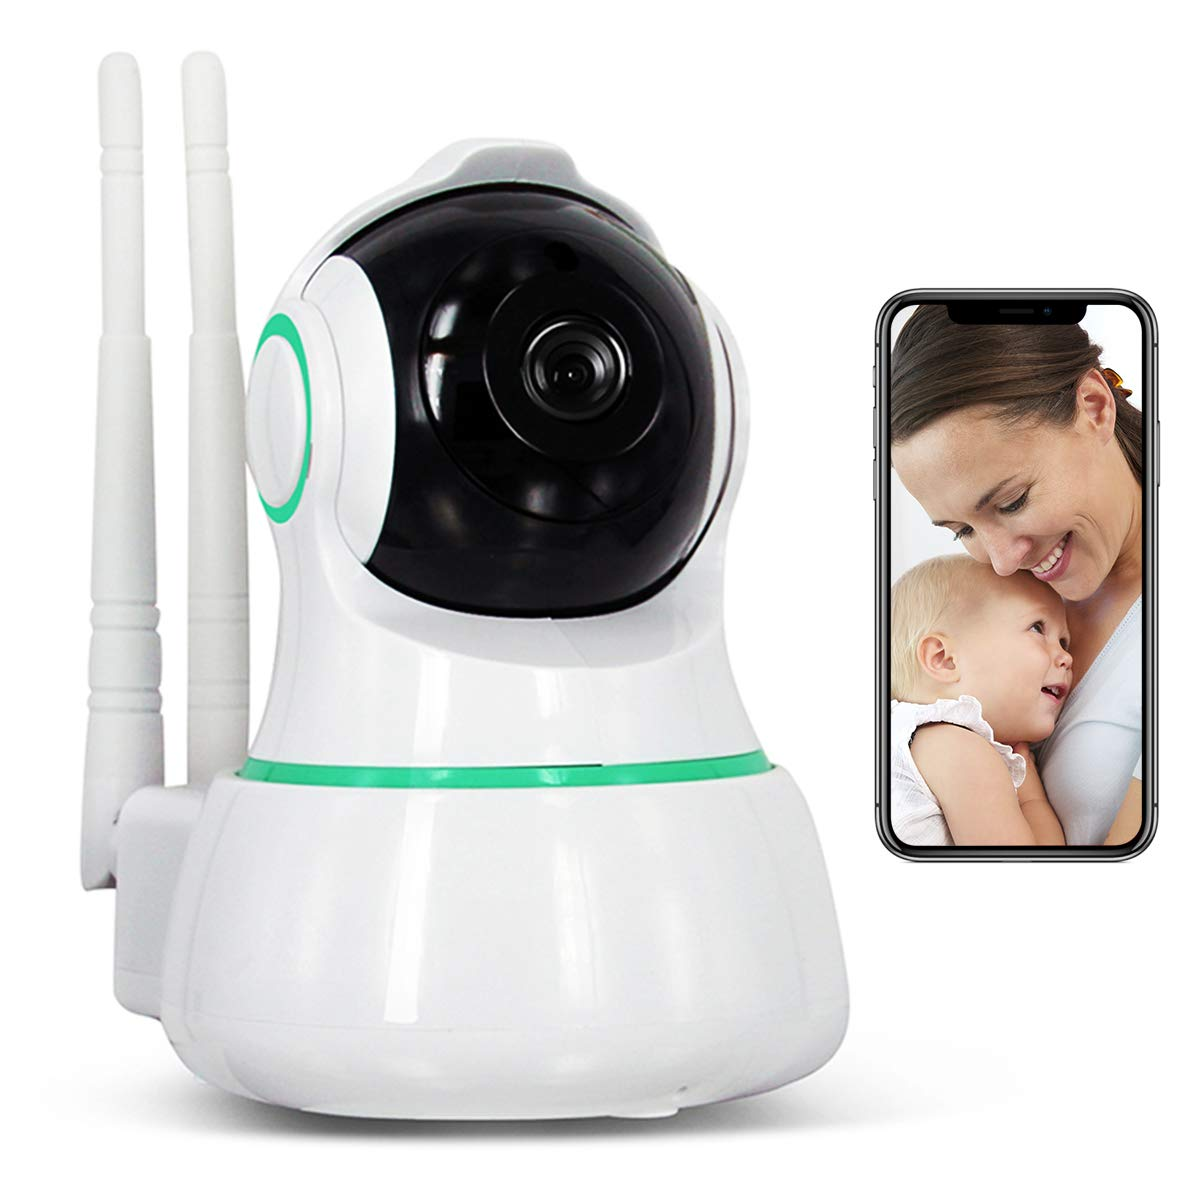 Vacam Wireless IP Security Camera HD 1080P Baby Care WiFi Remote Panorama 360 Degree Viewer Home Surveillance System for Pet Baby with Pan Tilt Two-Way Audio Night Vision